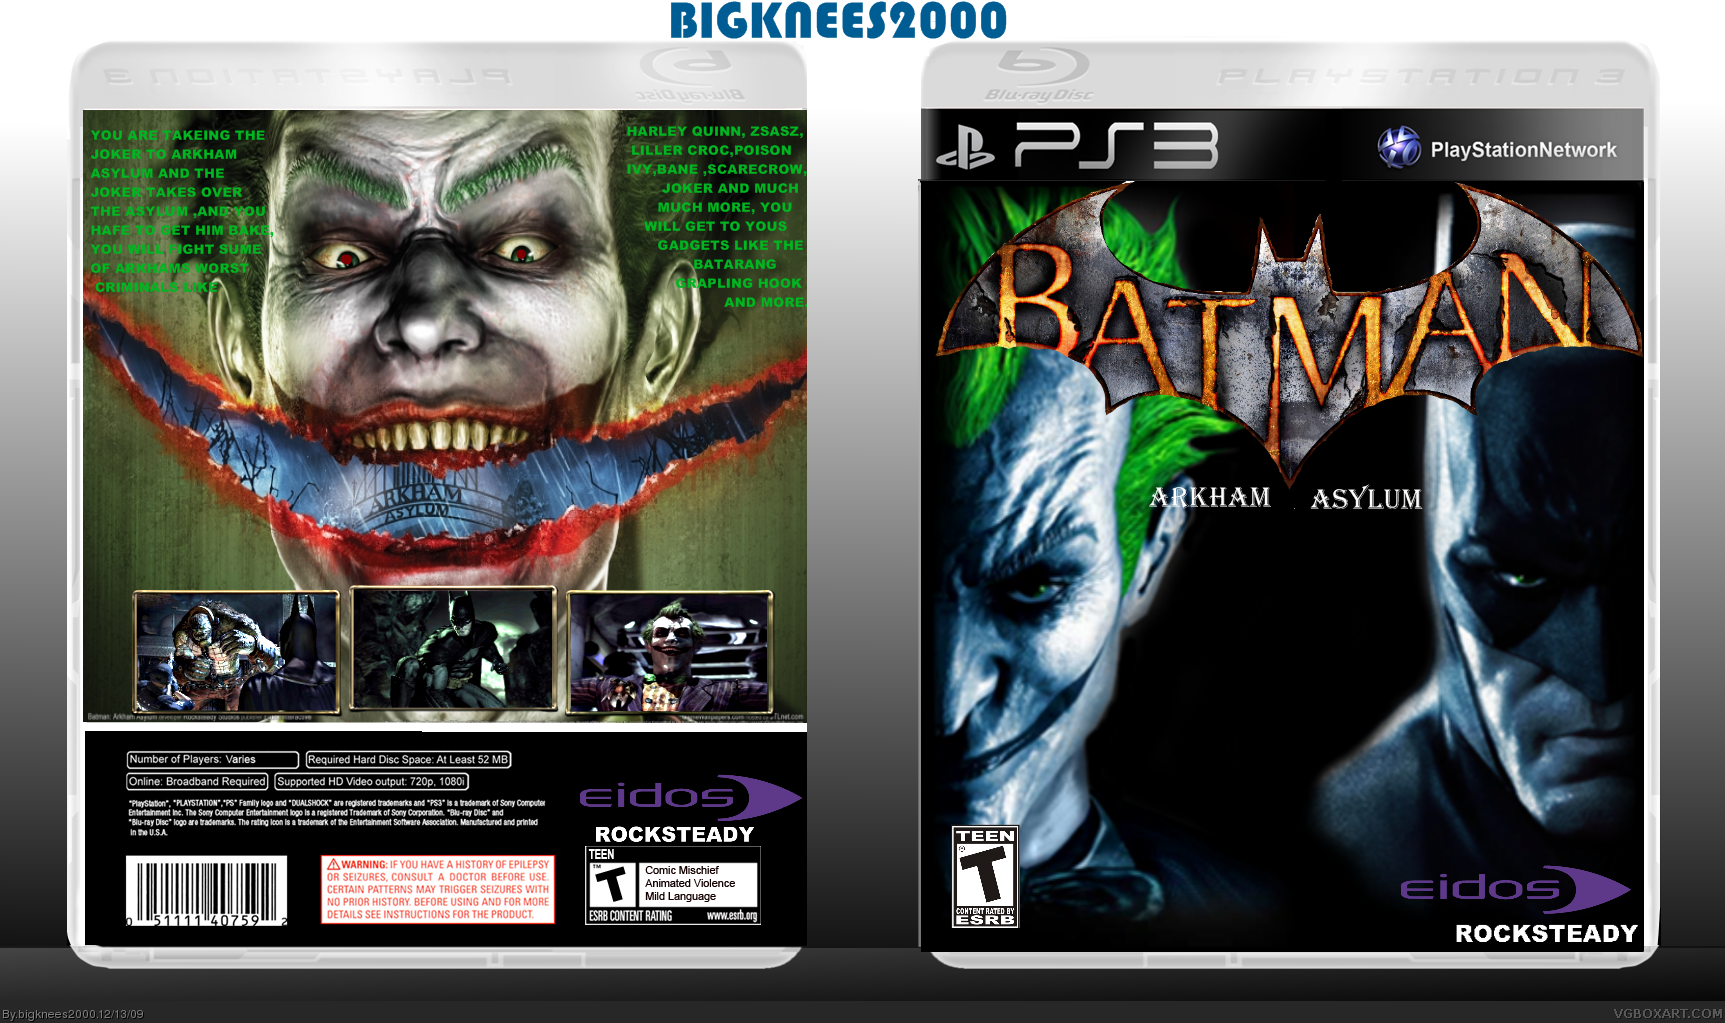 Batman Arkham Asylum box cover